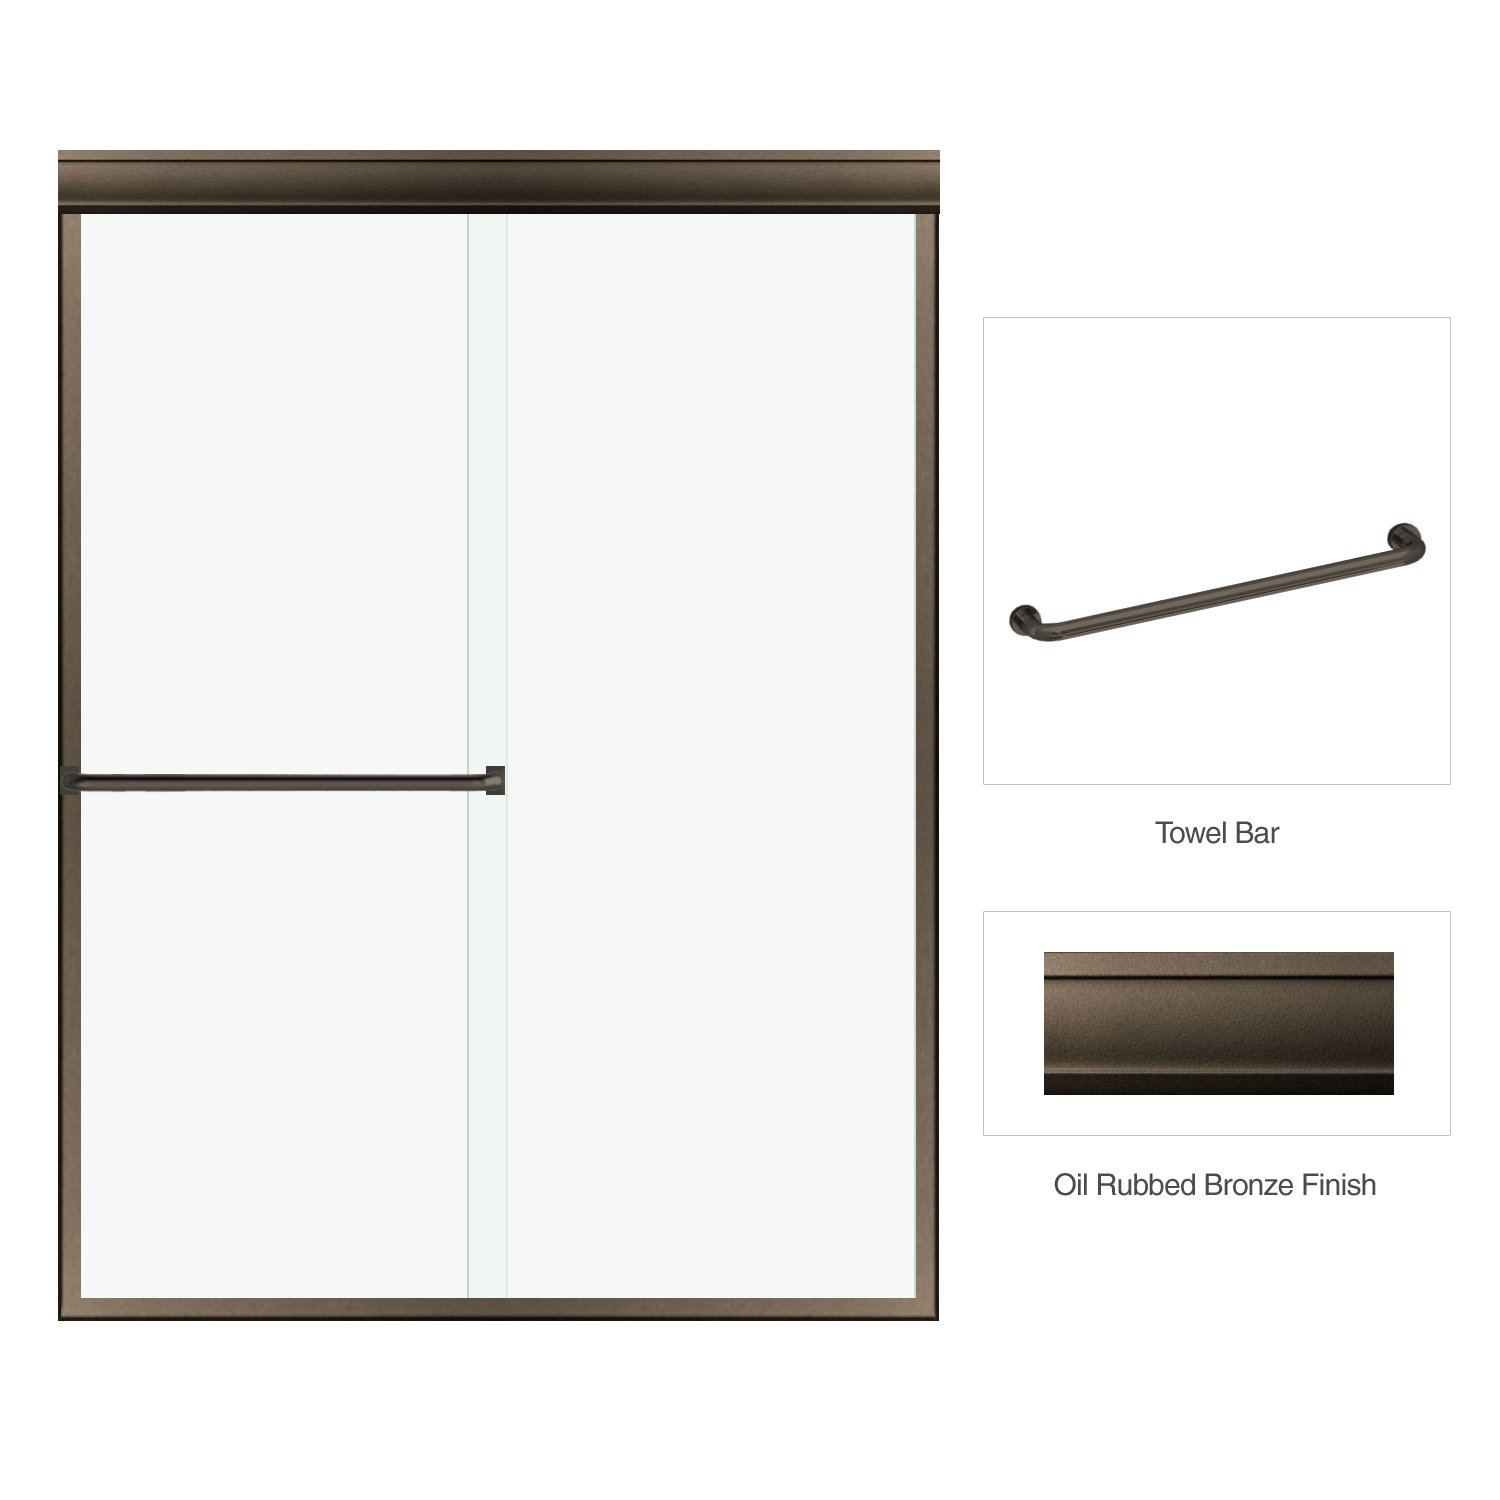 Classic 3/16'' Clear Glass Frameless Bypass Sliding Shower Enclosure 56''-60'' W x 70'' H Oil Rubbed Bronze Finish by Fab Glass and Mirror